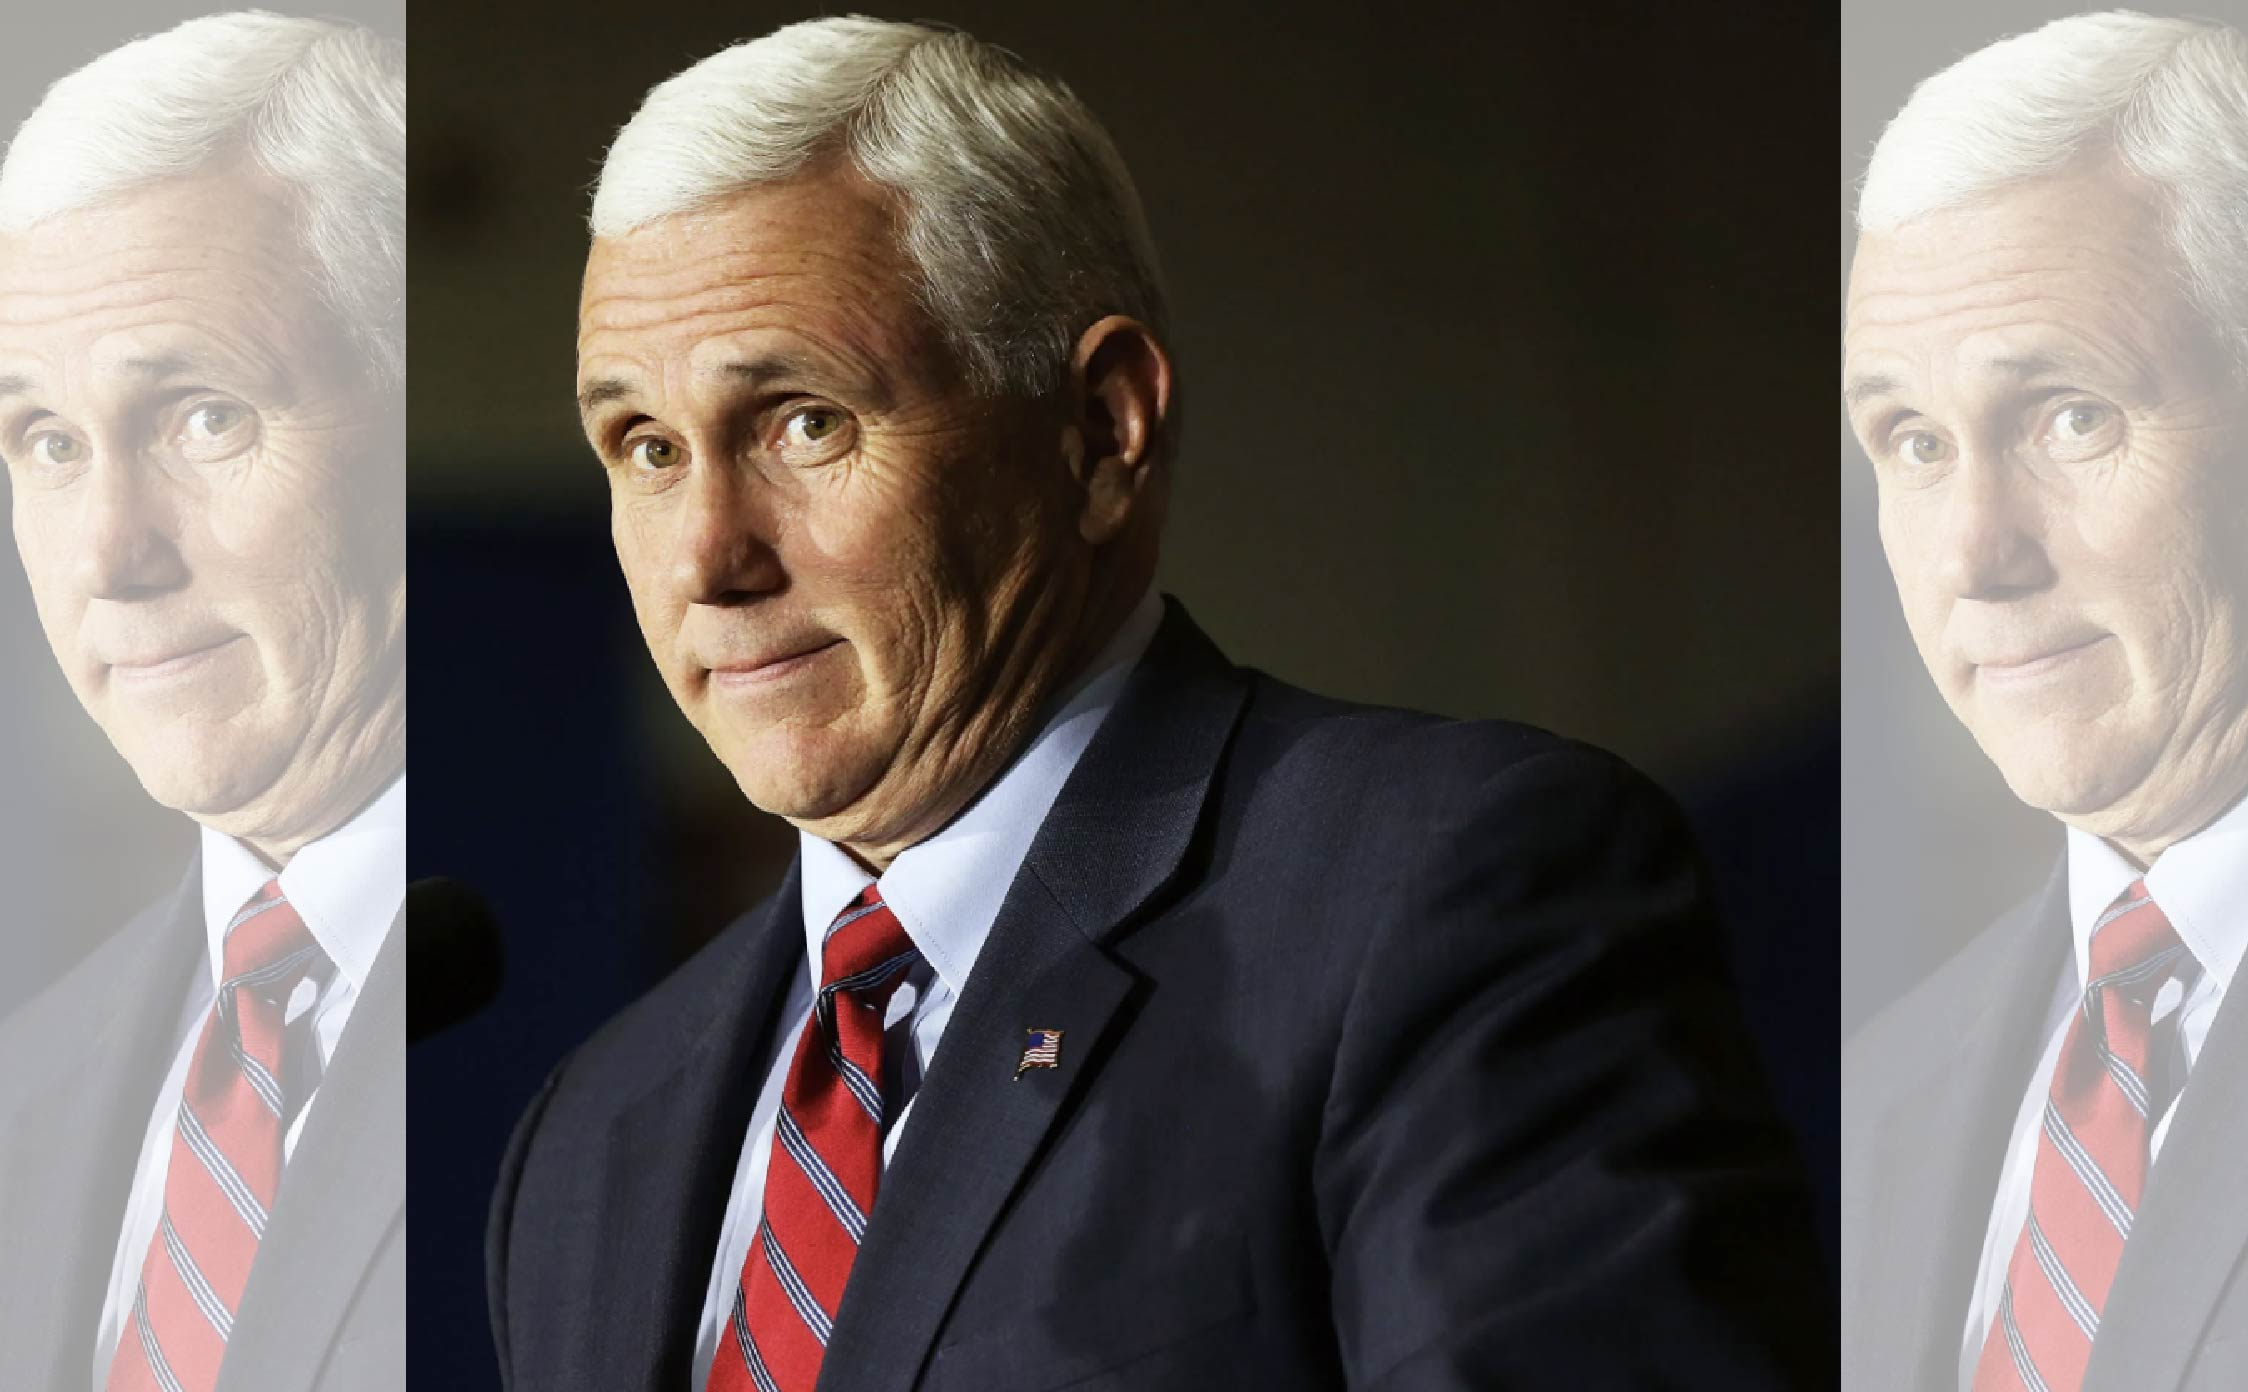 """Mike Pence Just Tried to Pull a """"Fast One"""" on MAGA But it Backfired in His Face"""